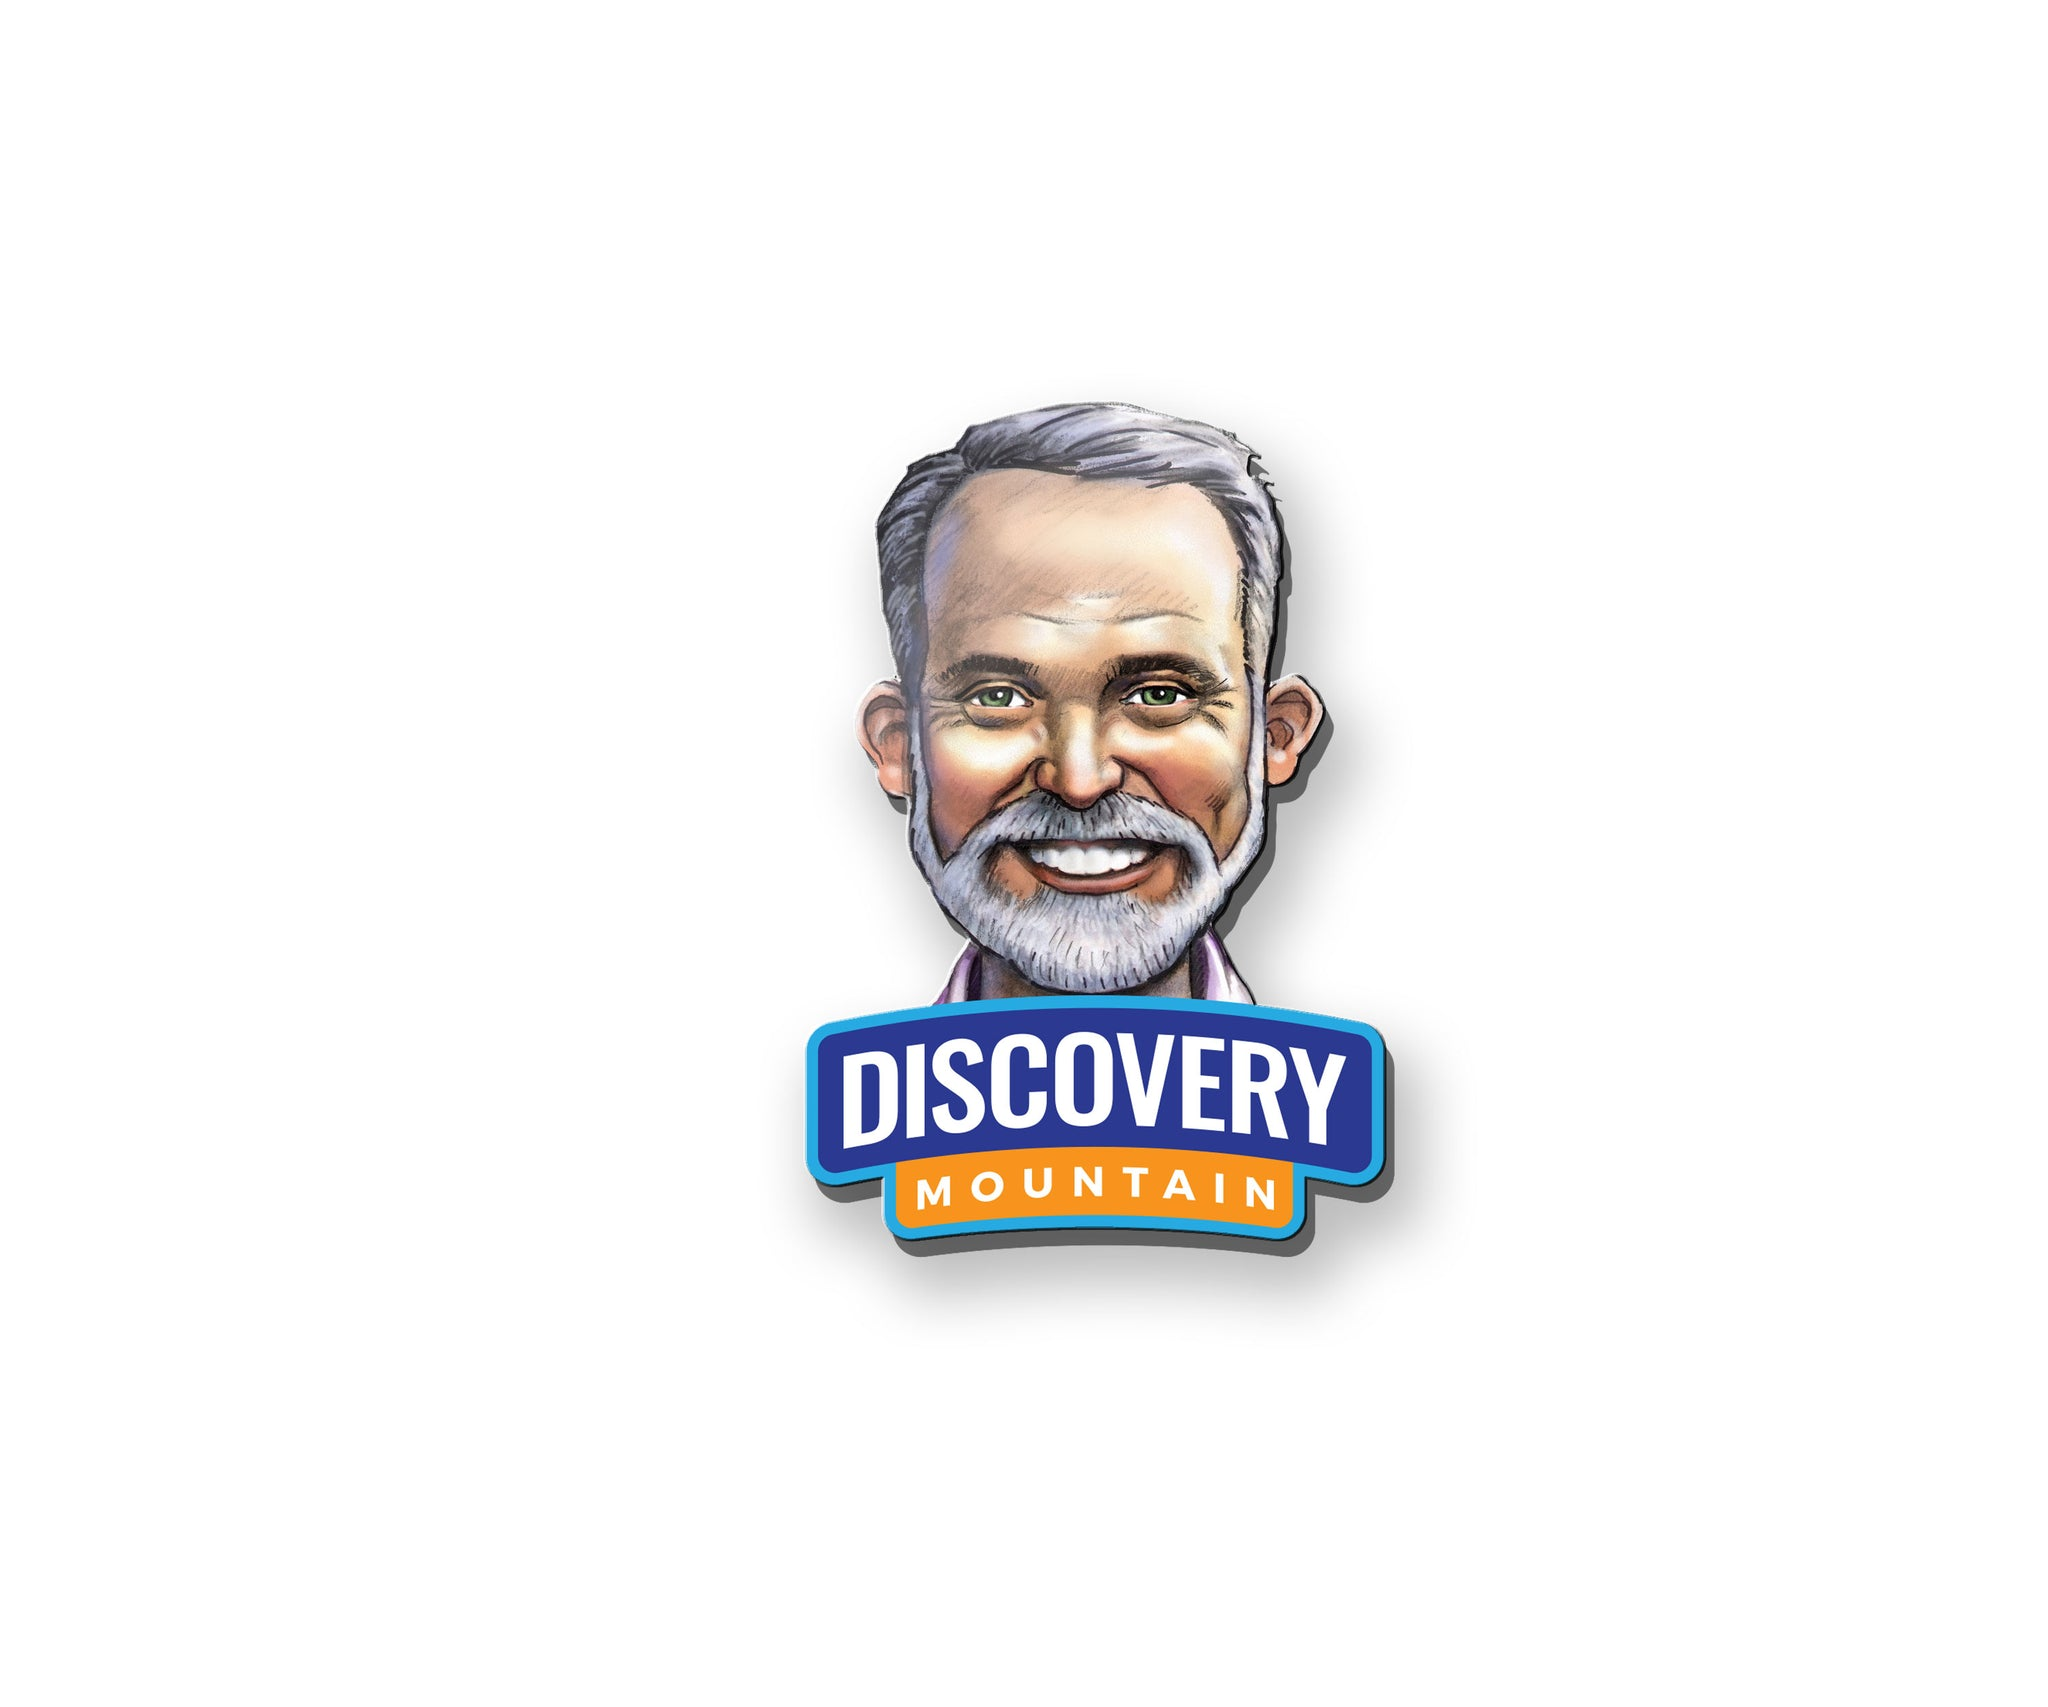 Discovery Mountain Character Pin - Director Doug